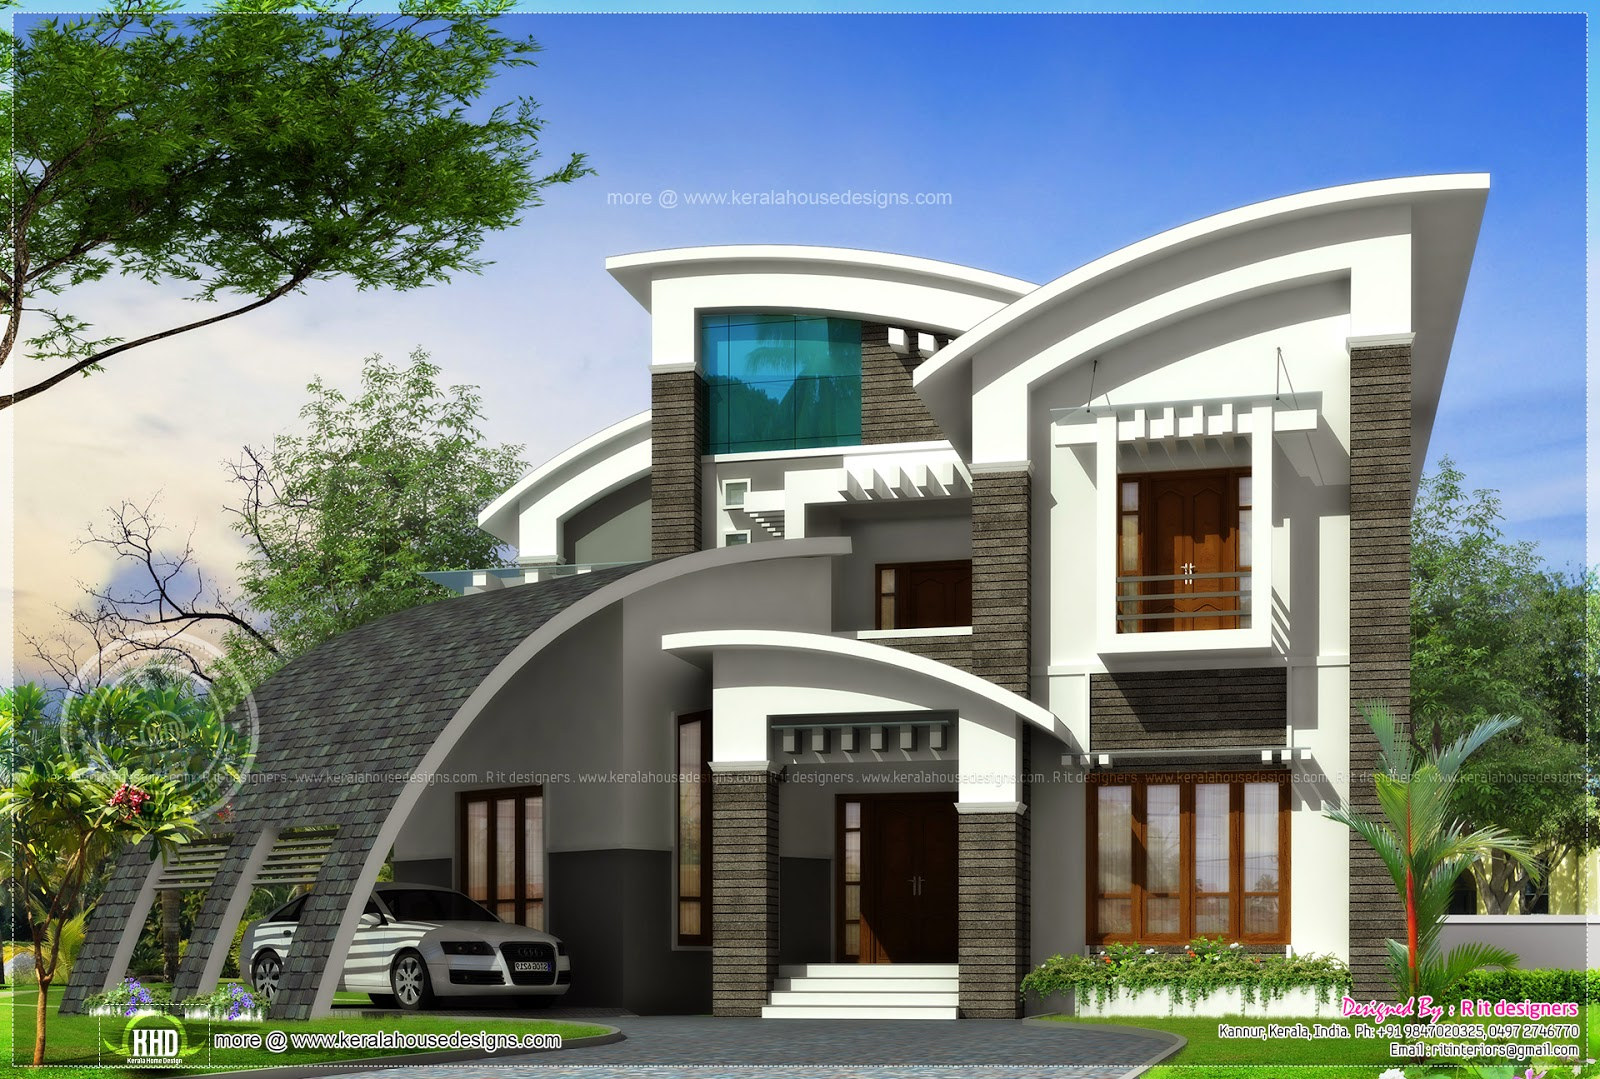 Super luxury ultra modern house design kerala home for Modern house plans and designs